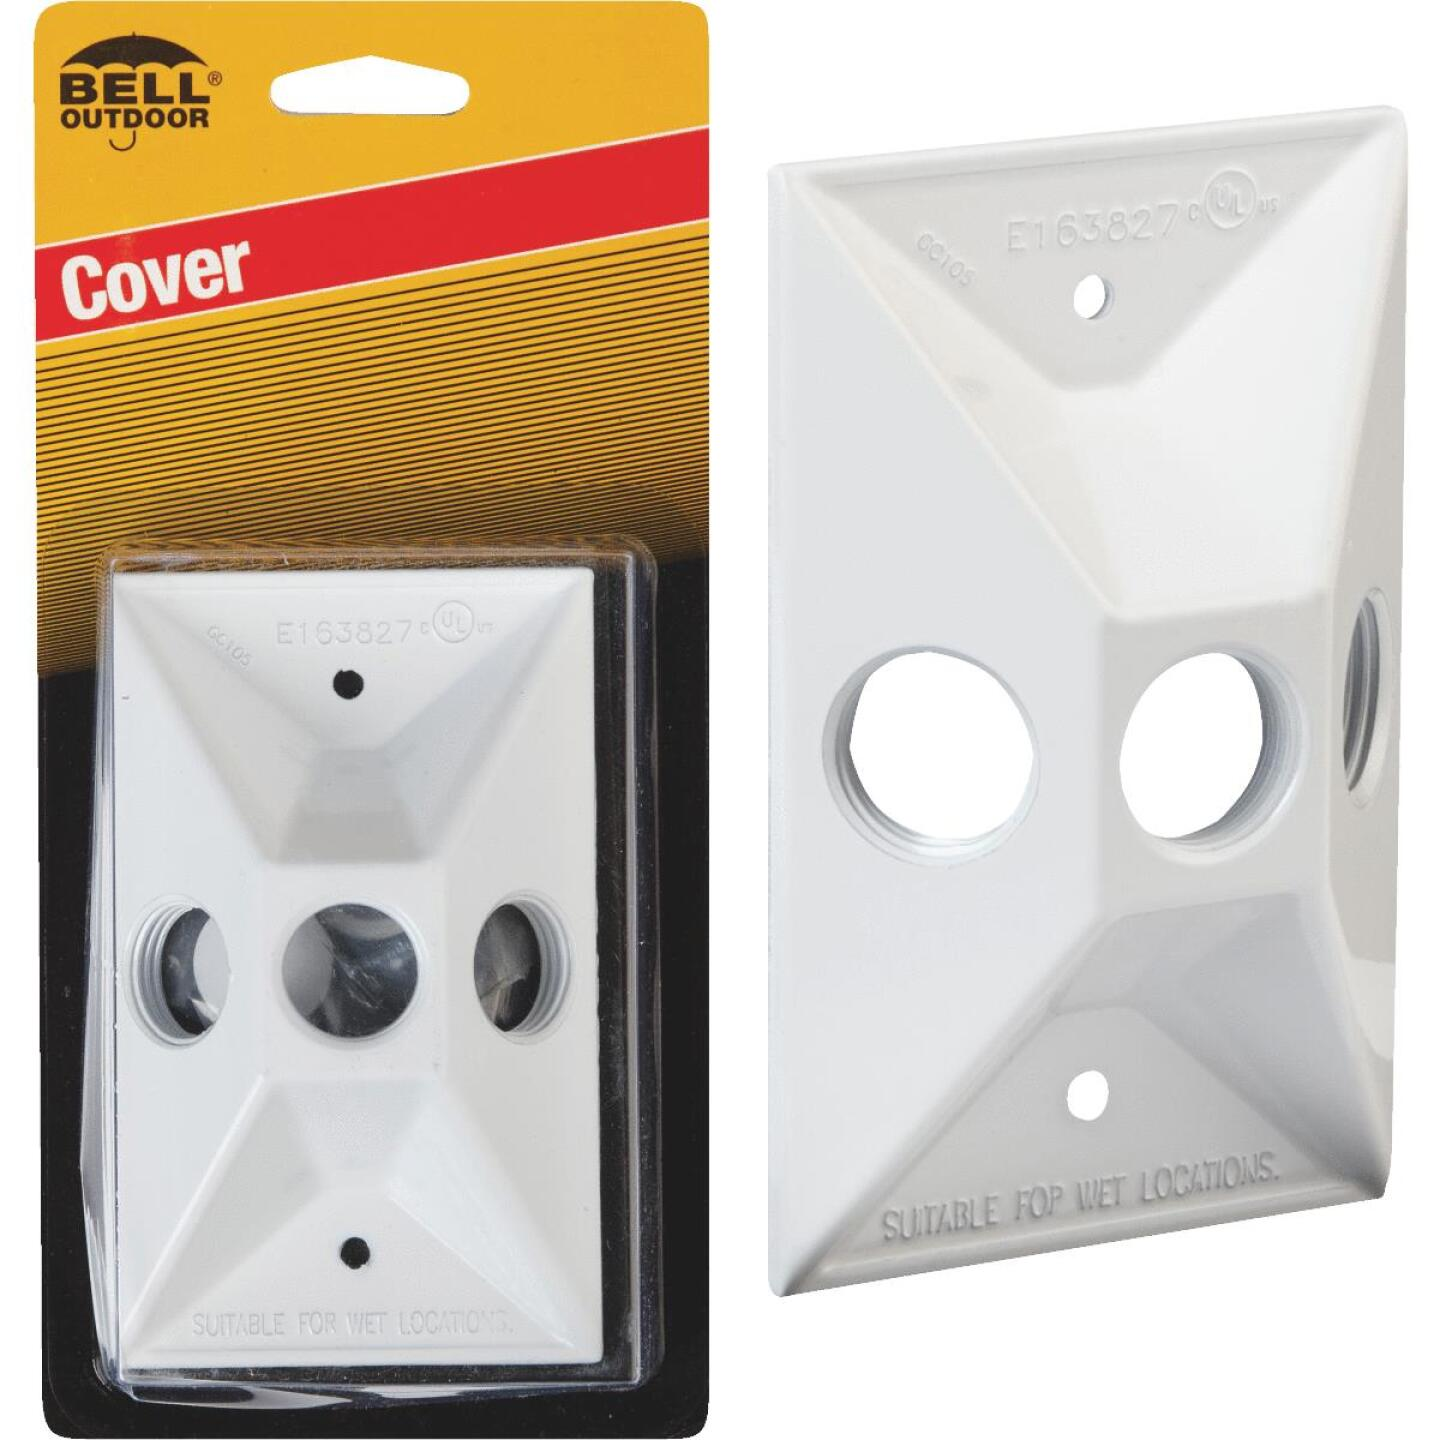 Bell 3-Outlet Rectangular Zinc White Cluster Weatherproof Outdoor Box Cover, Carded Image 1